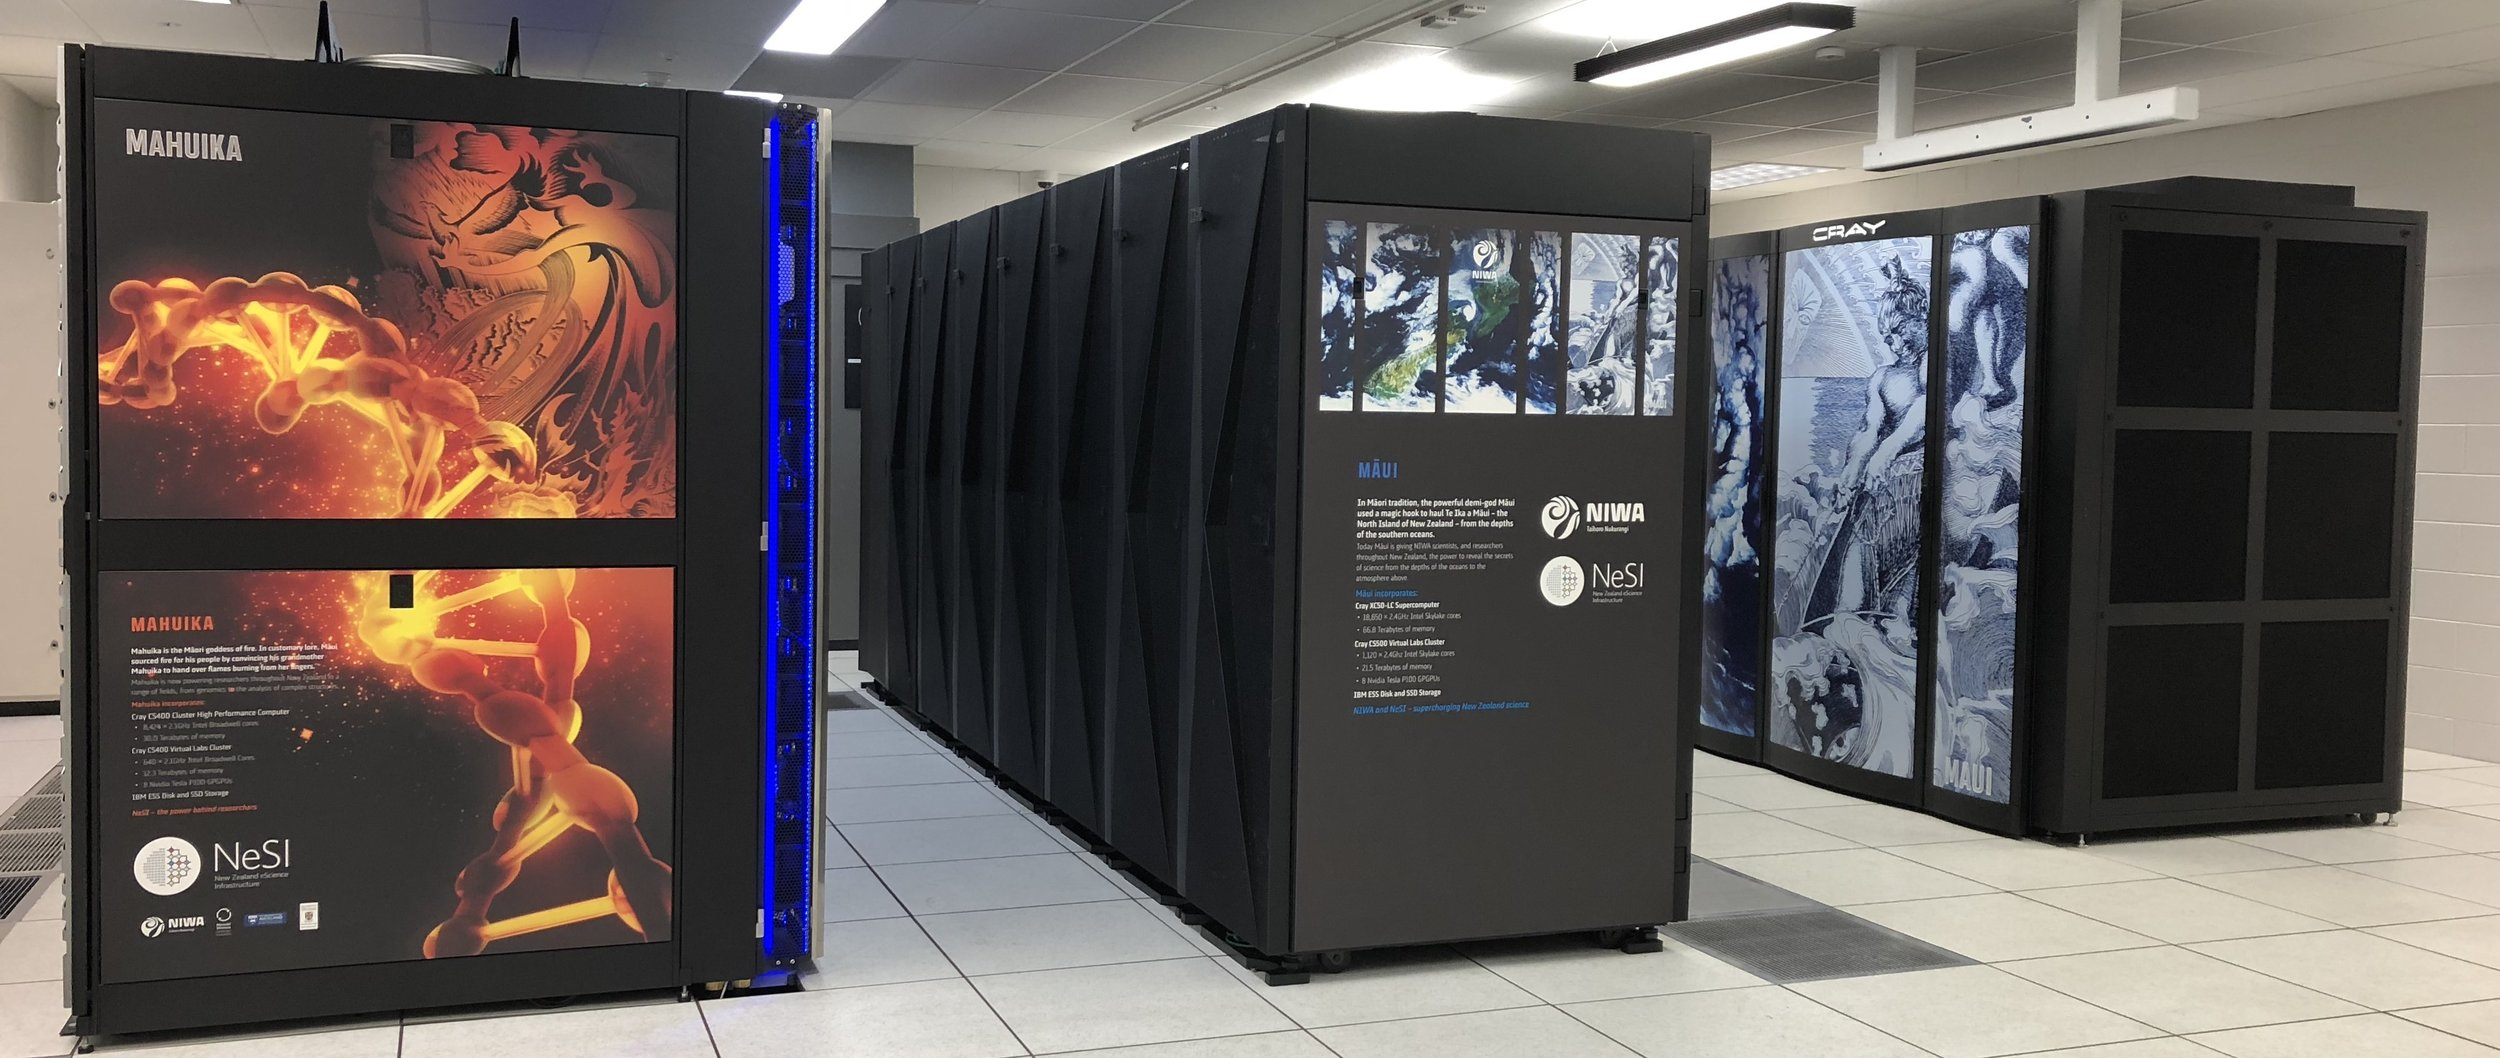 NZ eScience InfrastructureNew Zealand 2015 - Our senior leadership helped re-design New Zealand's High Performance Computing Infrastructure to better support a collaborative approach to research and innovation for New Zealand.